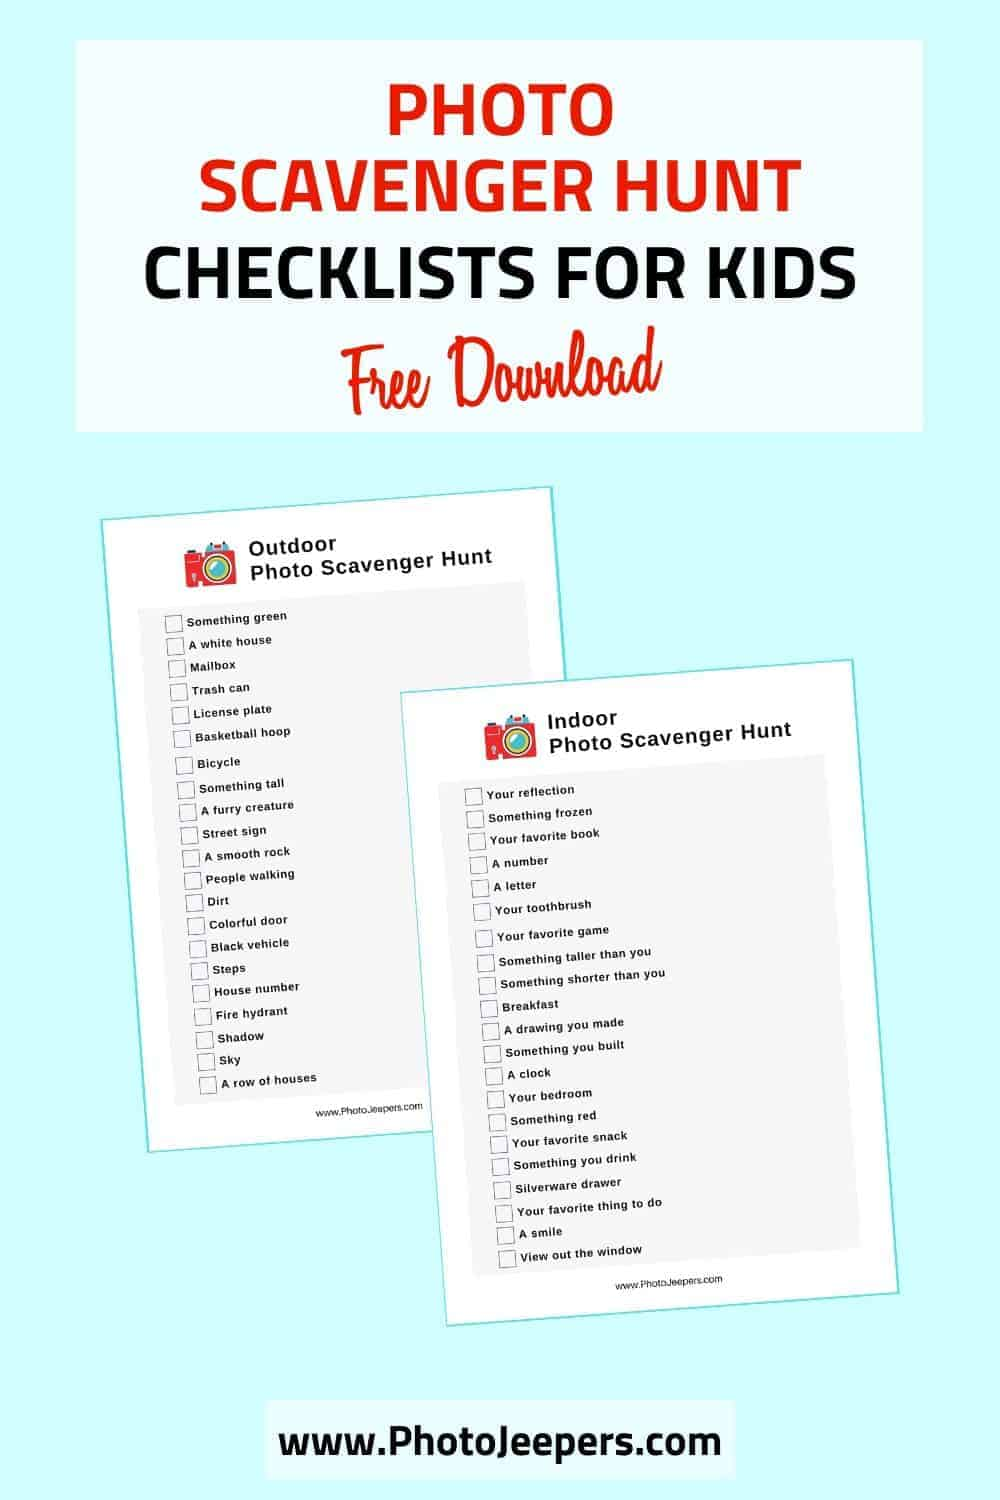 Fun photo scavenger hunt checklists for older kids! Photo scavenger hunts are a fun indoor or outdoor activity for kids! #photography #scavengerhunt #kidactivities #photojeepers